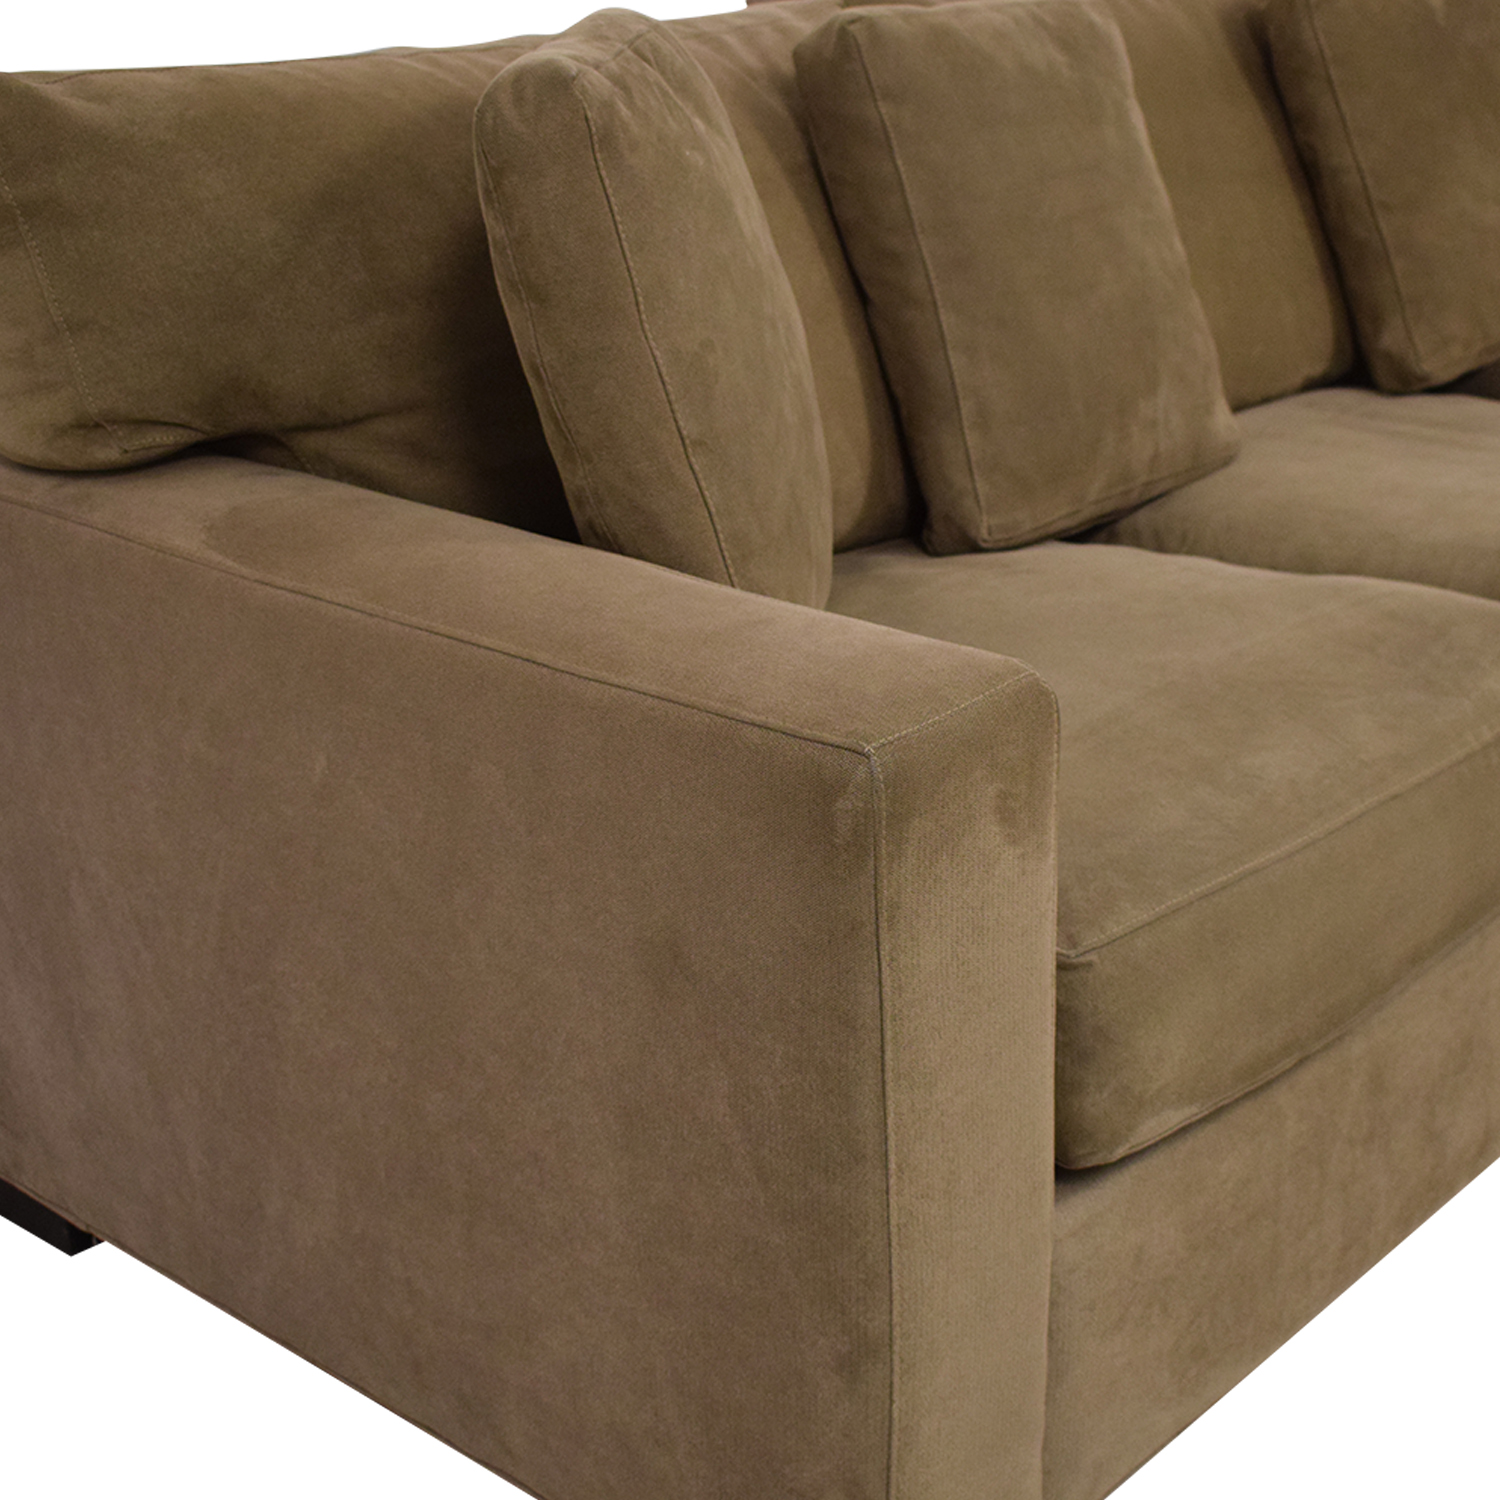 buy Crate & Barrel Axis II 3-Piece Sectional Sofa Crate & Barrel Sectionals